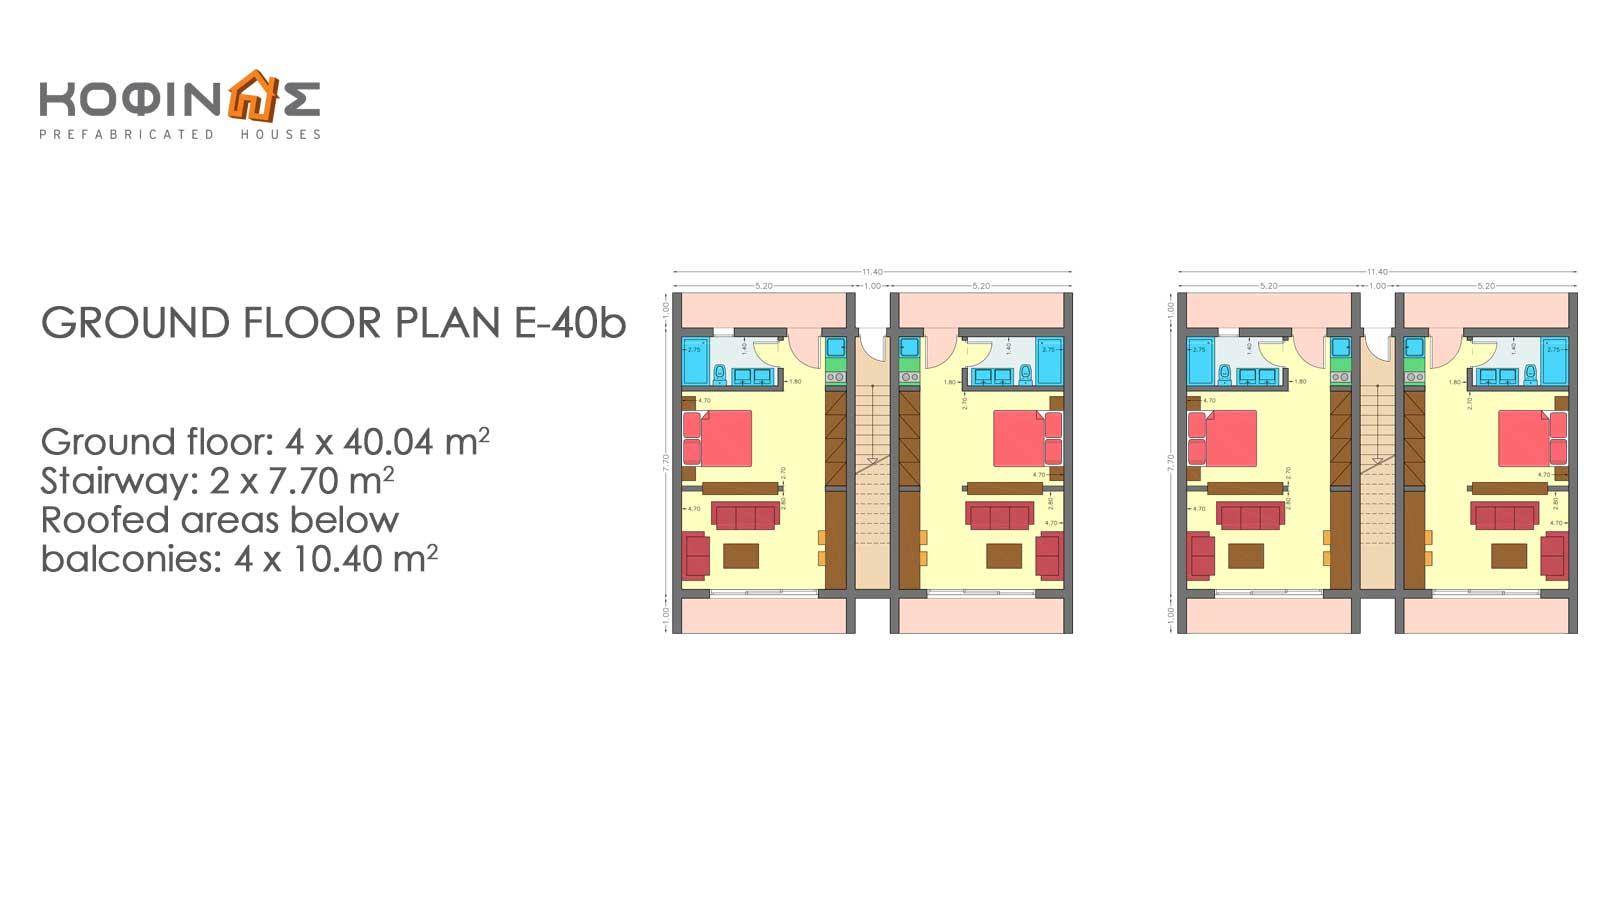 Complex of 1-story houses E-40b, total surface of houses 8×40,04 & staircases 4×7,70 = 351,12 m²